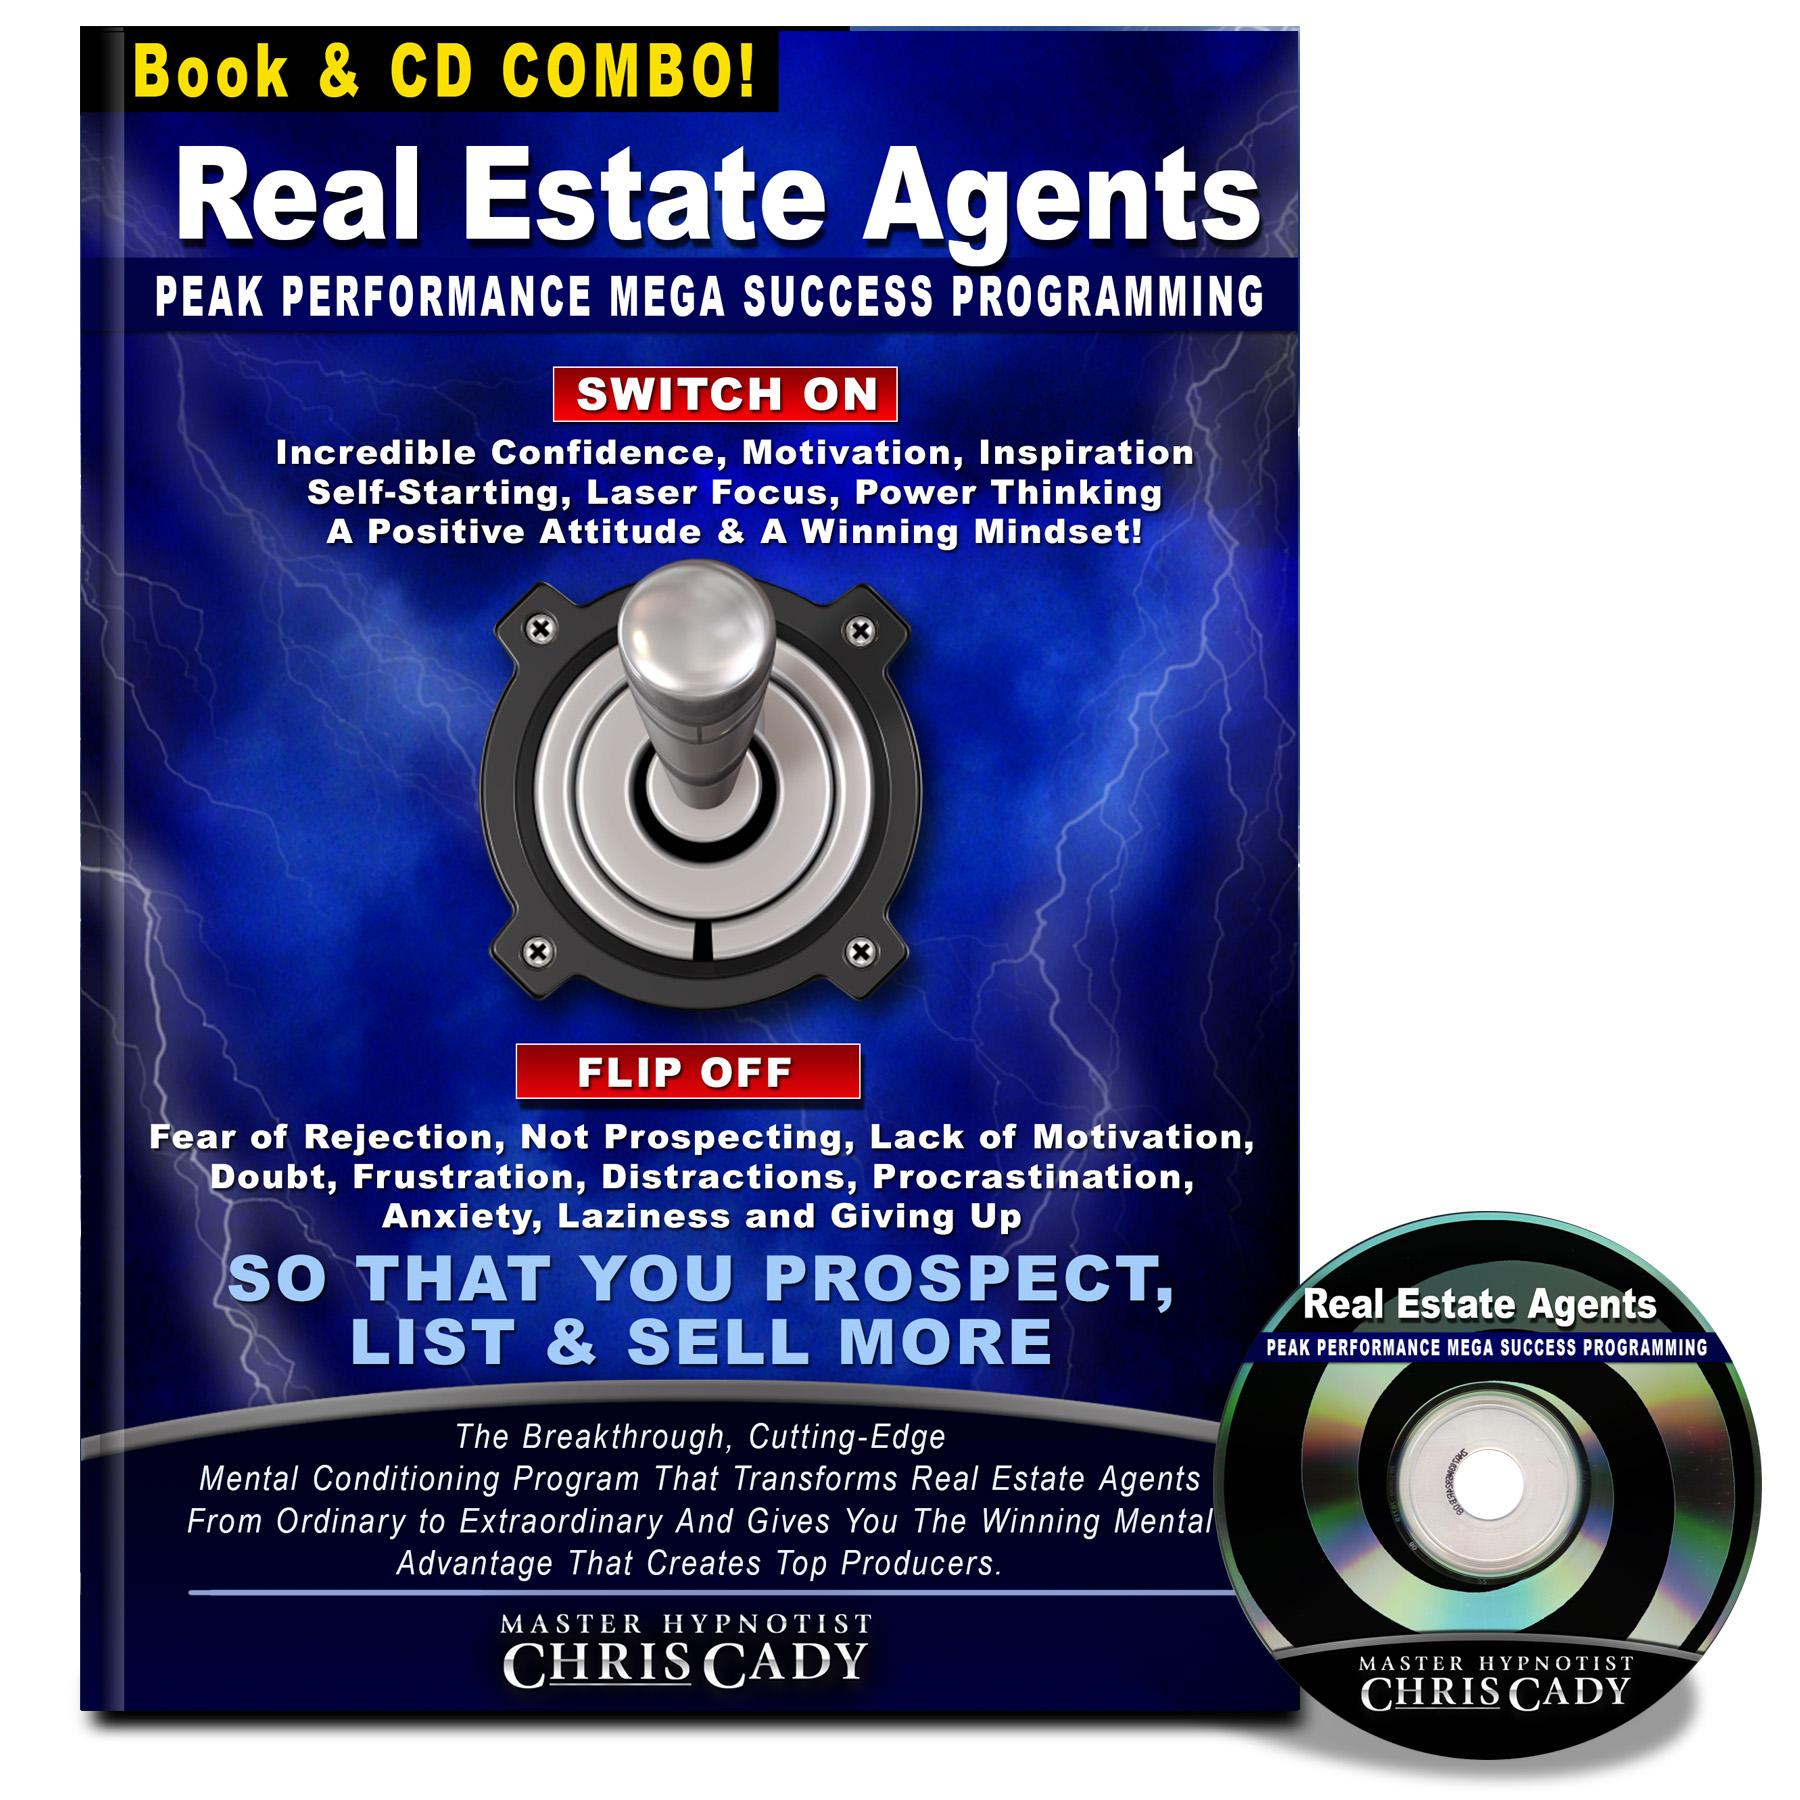 hypnosis hypnotherapy  for real estate agents  for stage fright public speaking and prospecting